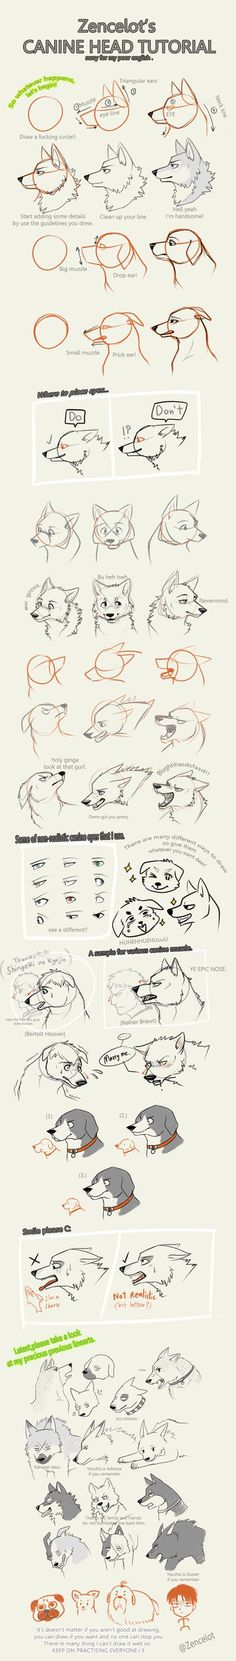 Zency's Canine Head Tutorial by Zencelot